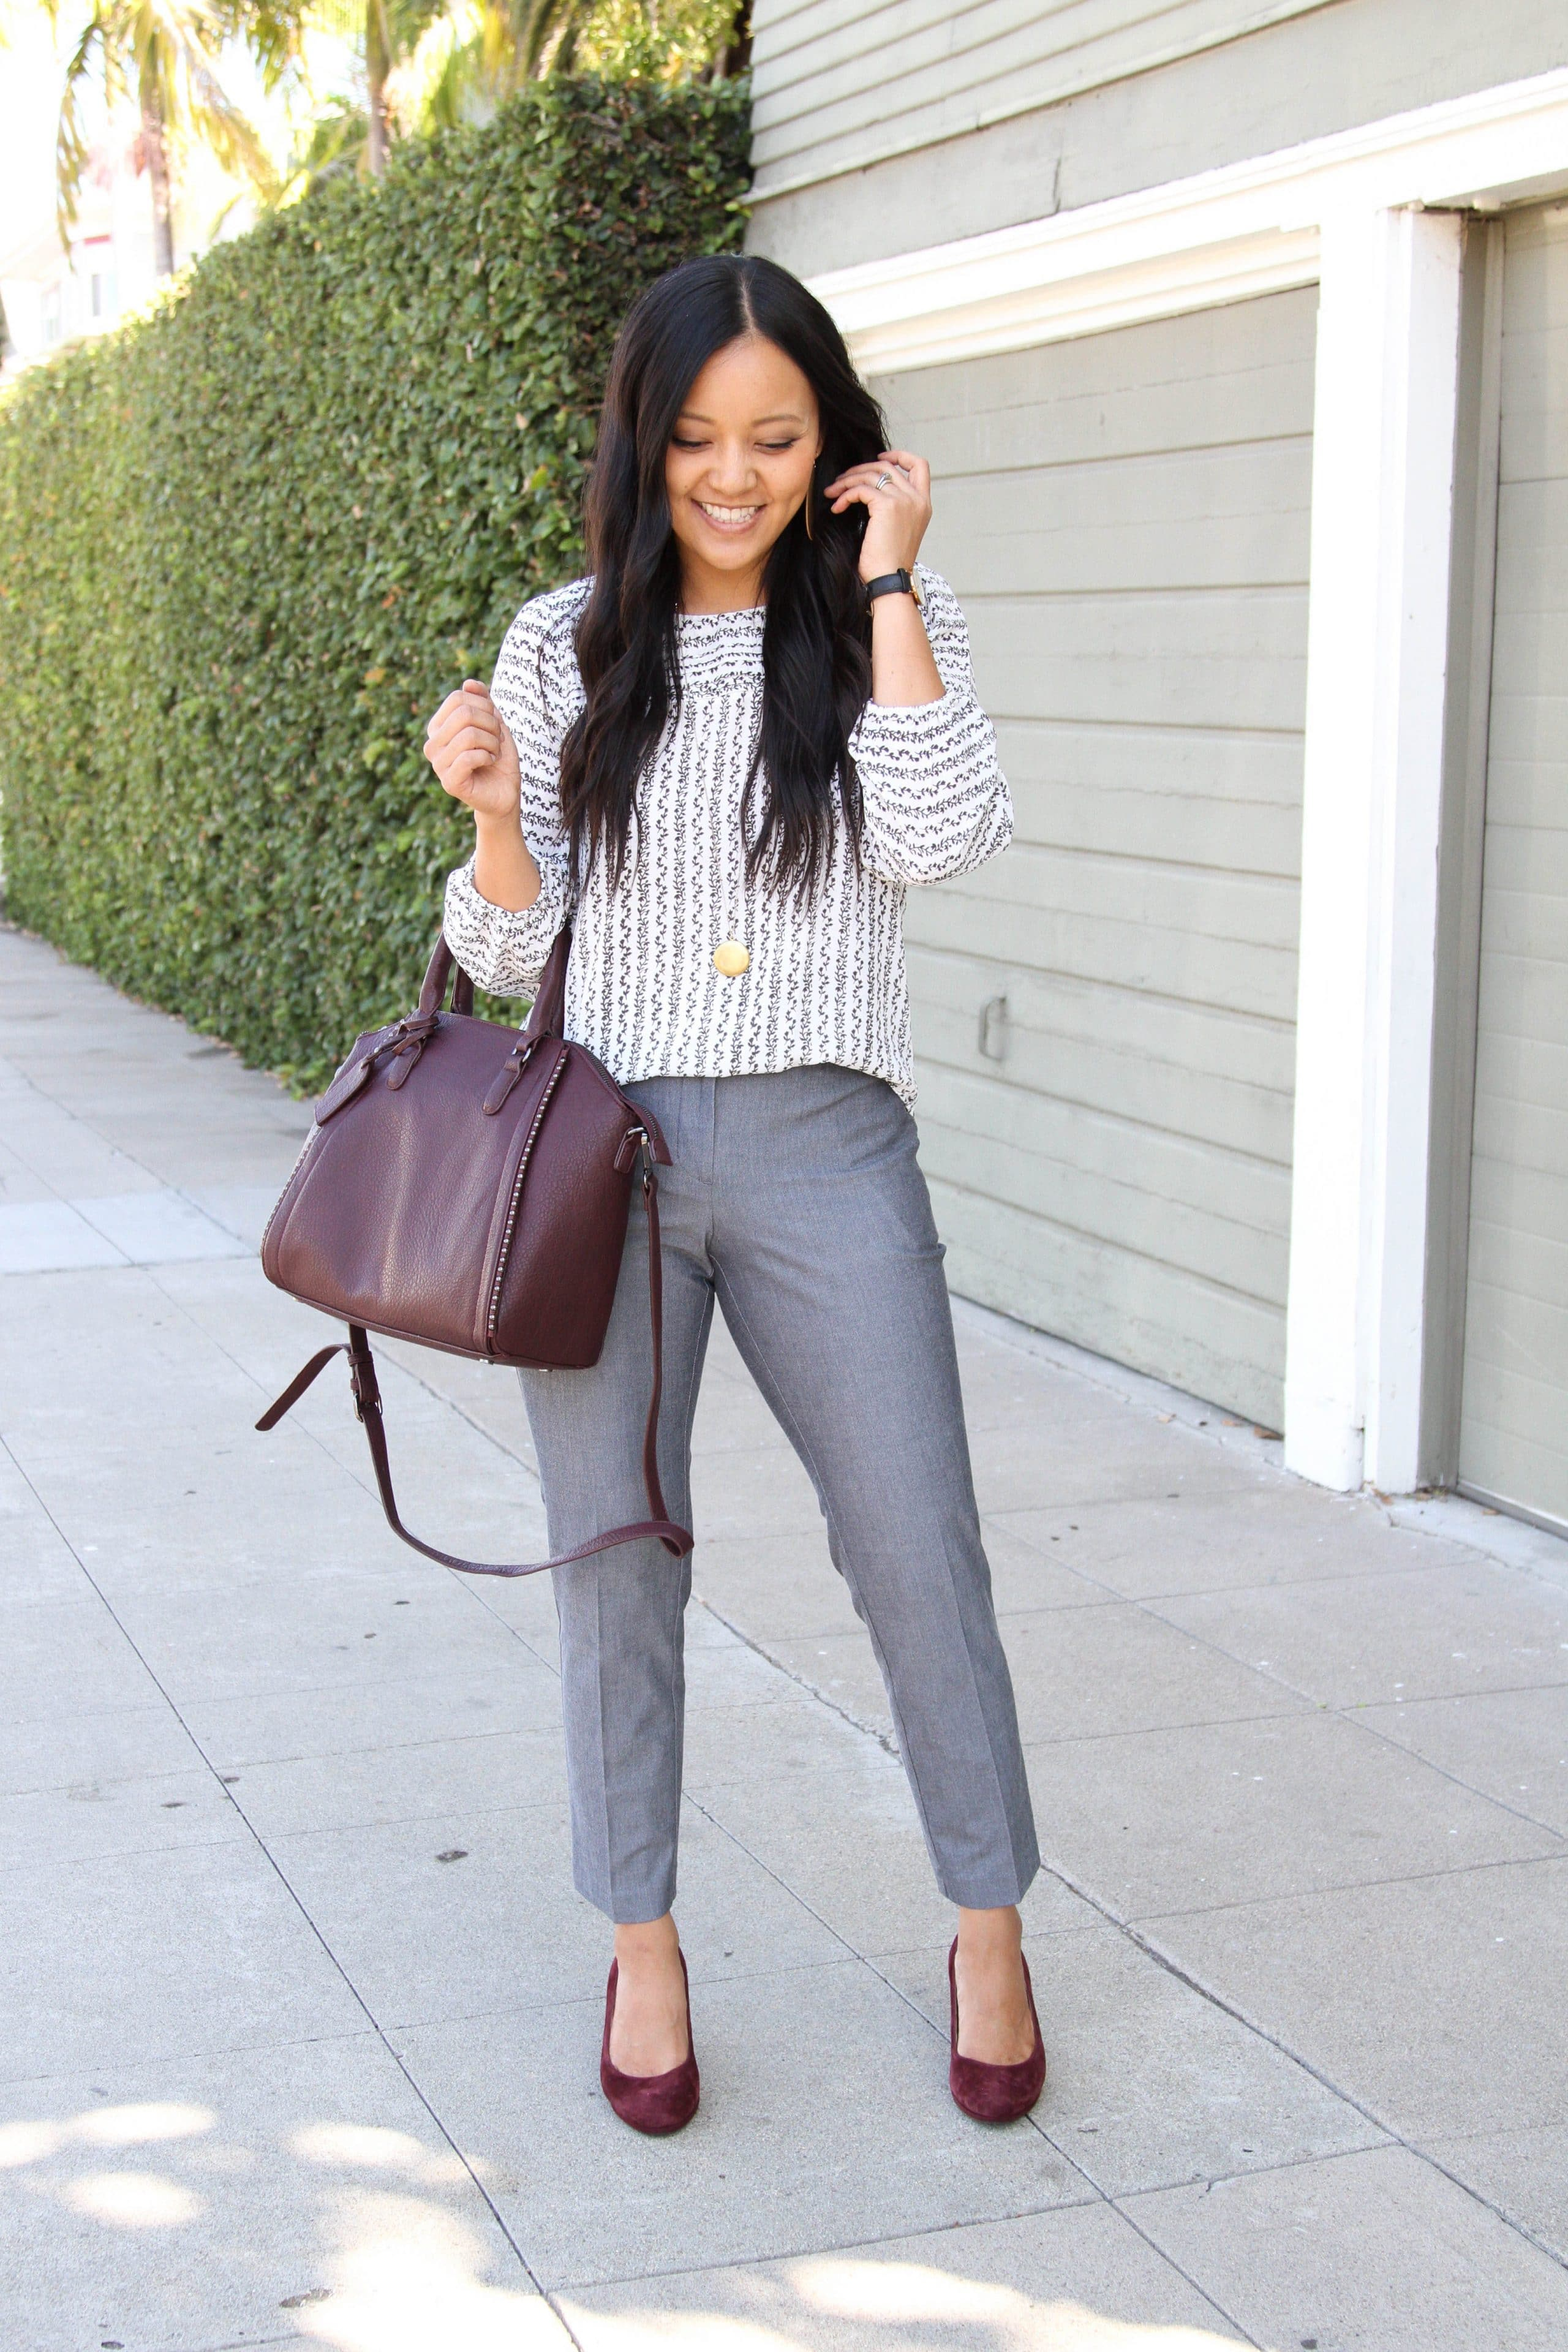 131015d3774 ... White and Black Floral Blouse + Gray Business Casual Pants + Maroon  Heels + Maroon Bag ...